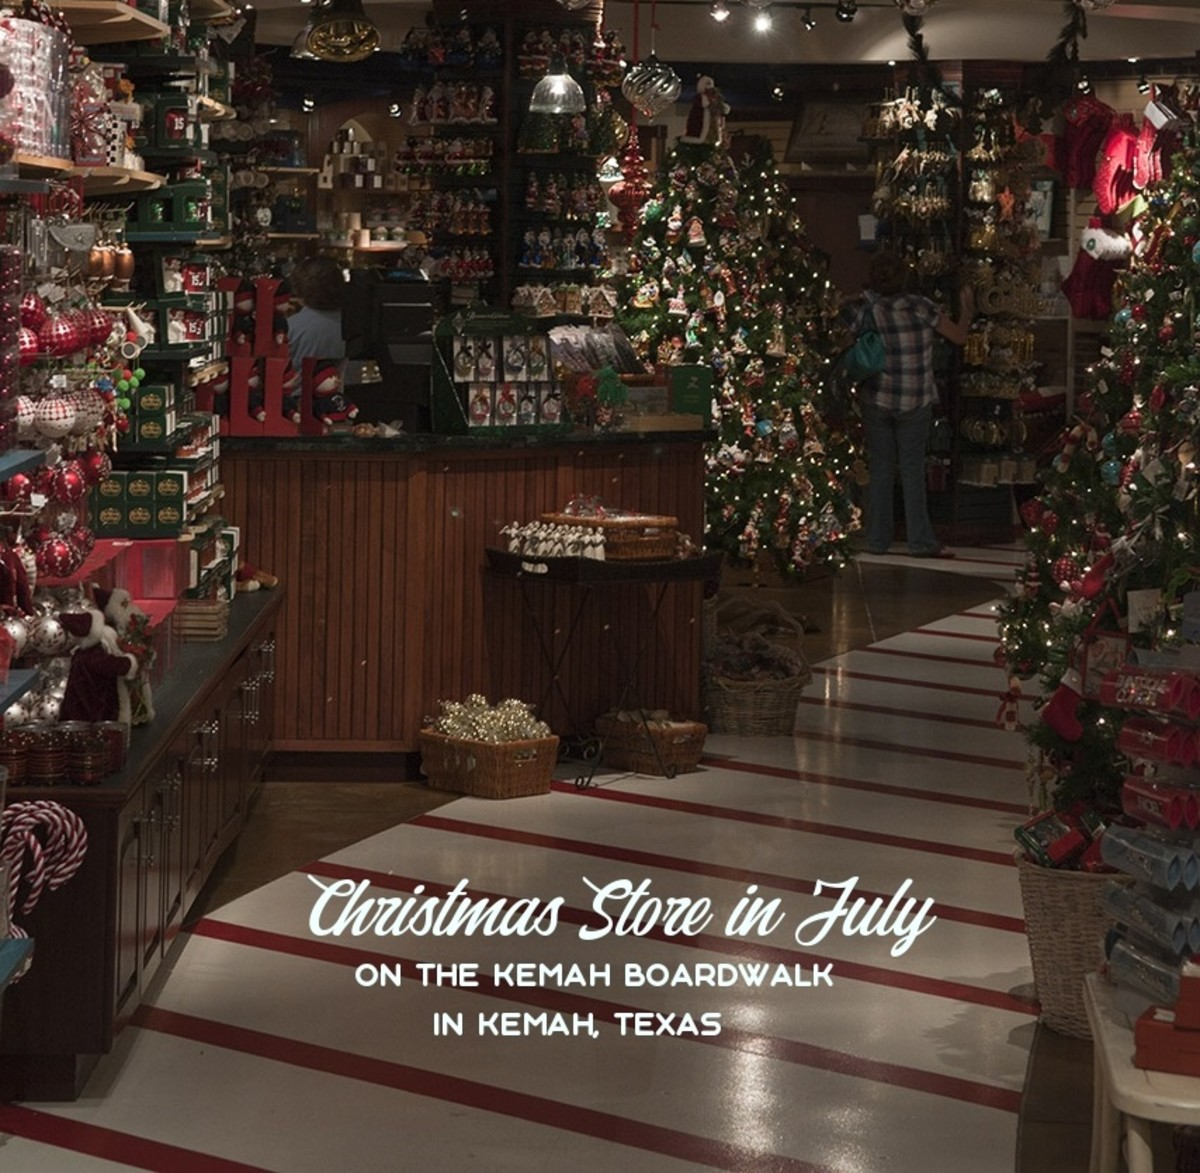 Christmas Store in July, in Kemah, Texas